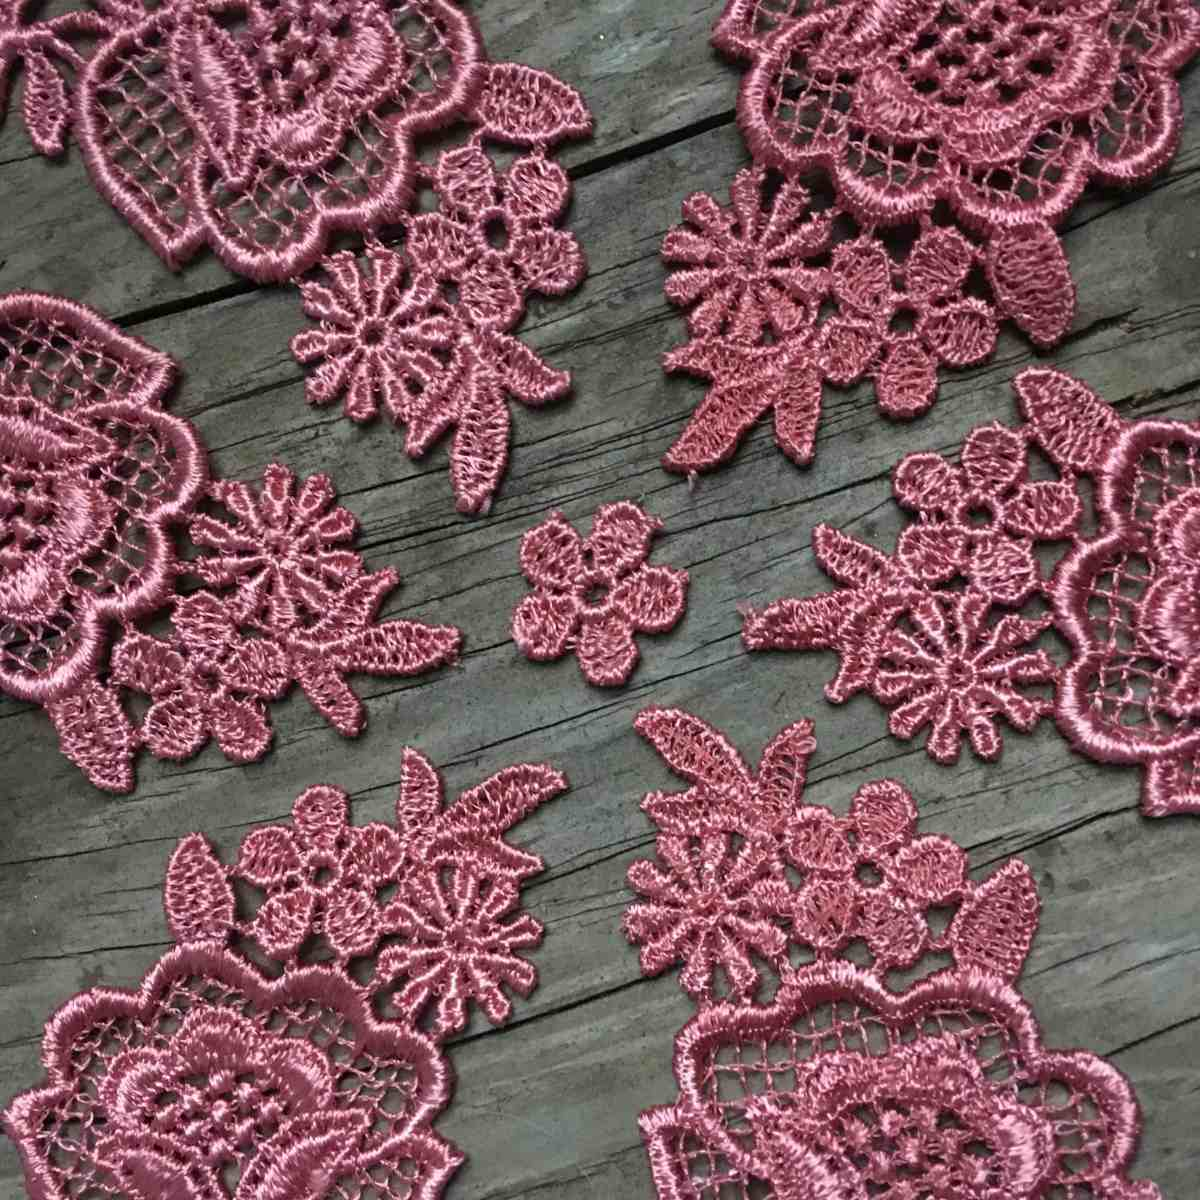 Making Lace Jewelry